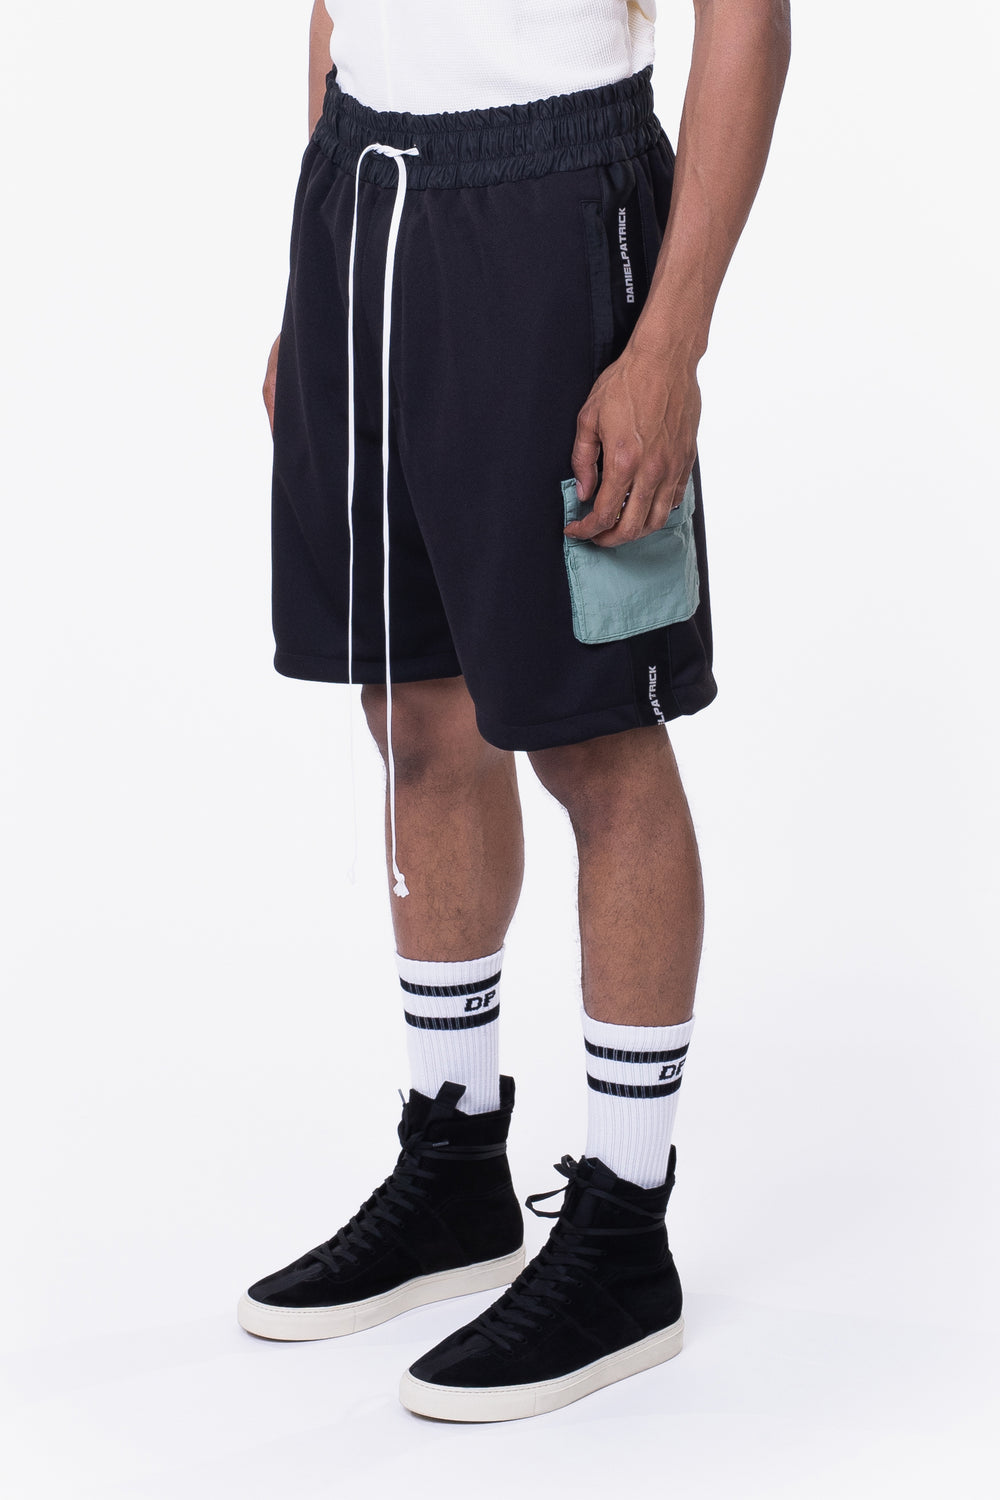 cargo gym short / black + sea foam